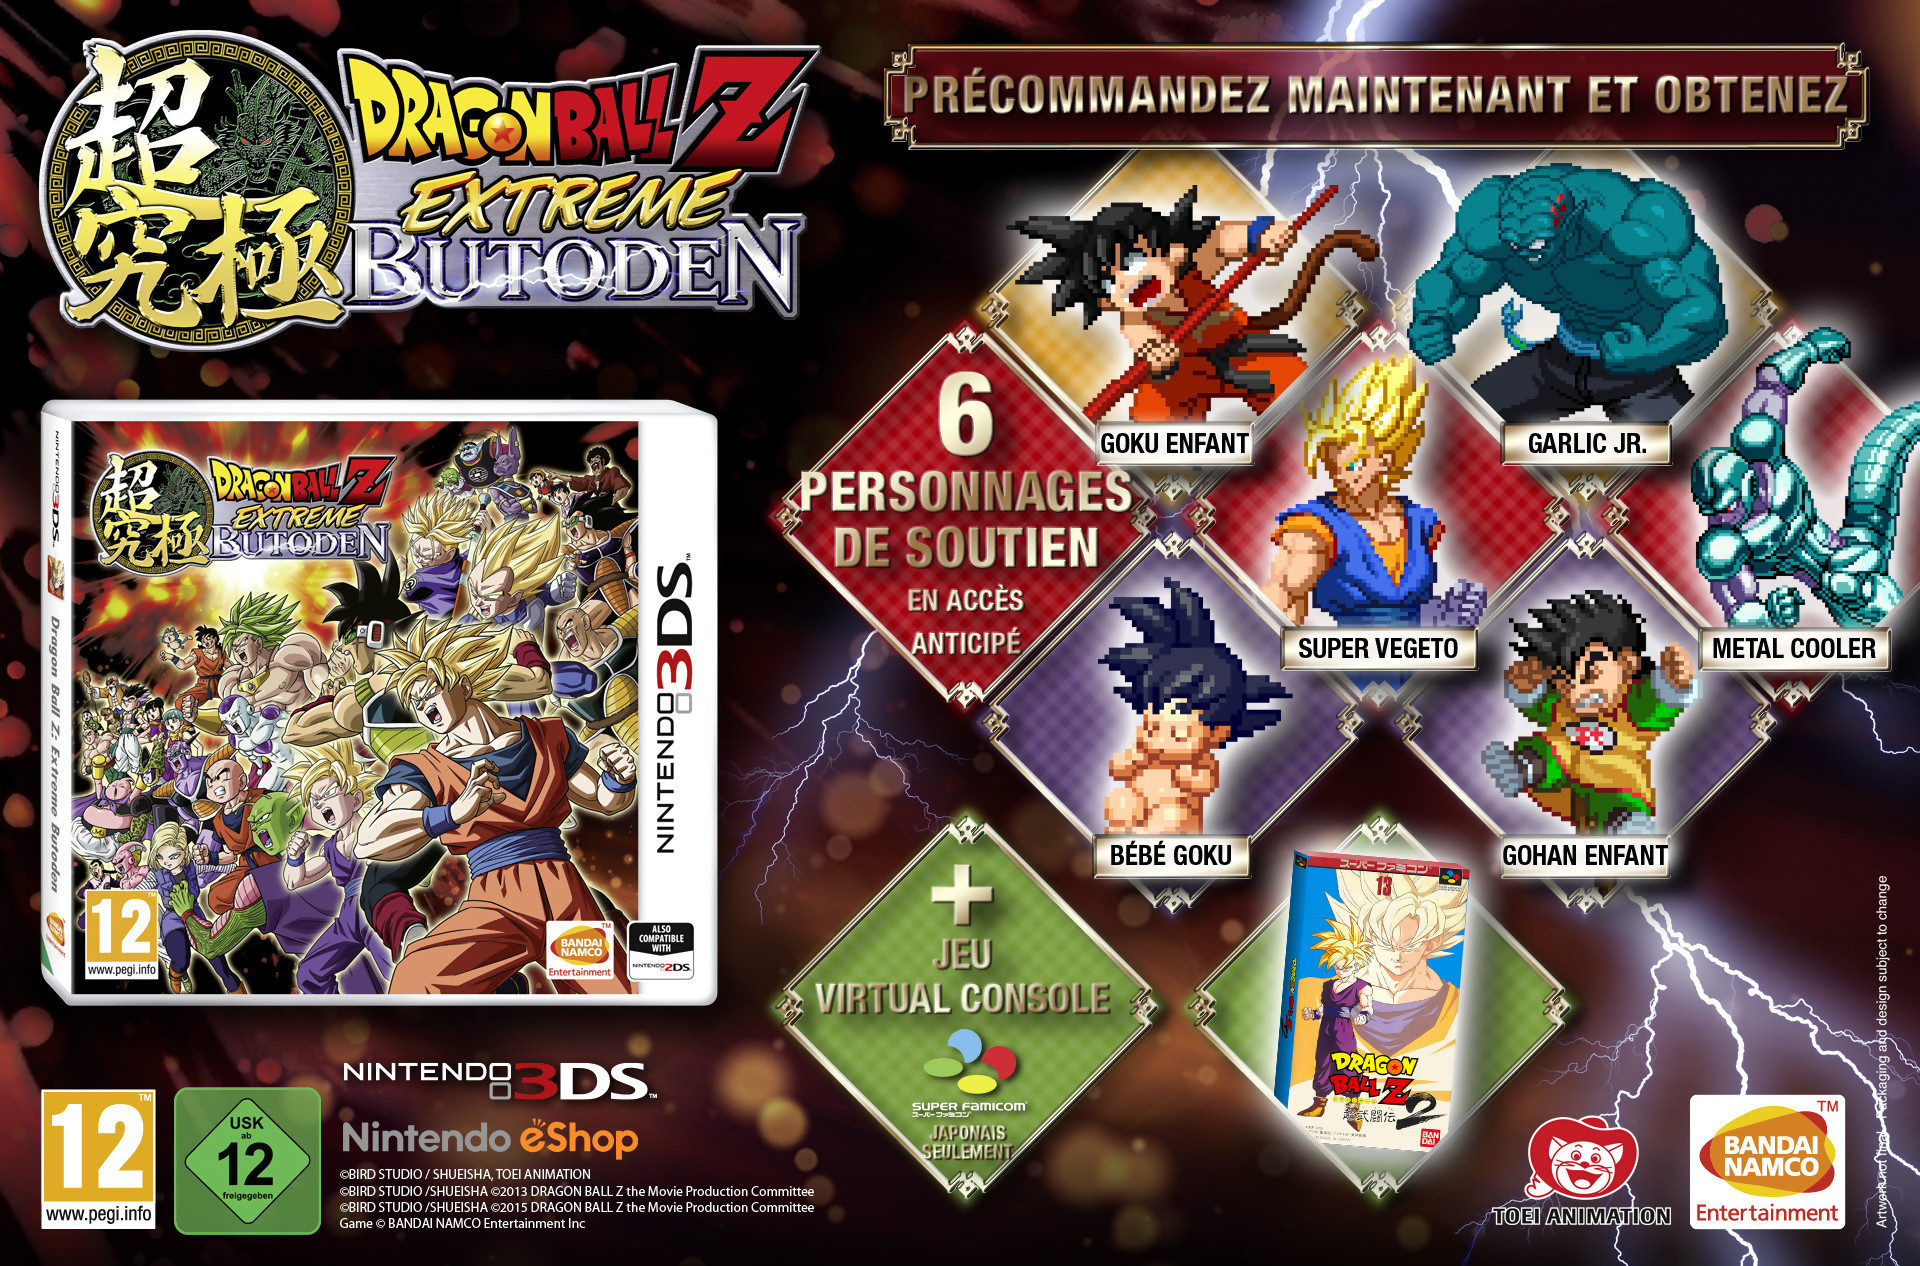 Dragon ball z extreme butoden photos du bundle new 3ds - Jeux info dragon ball z ...